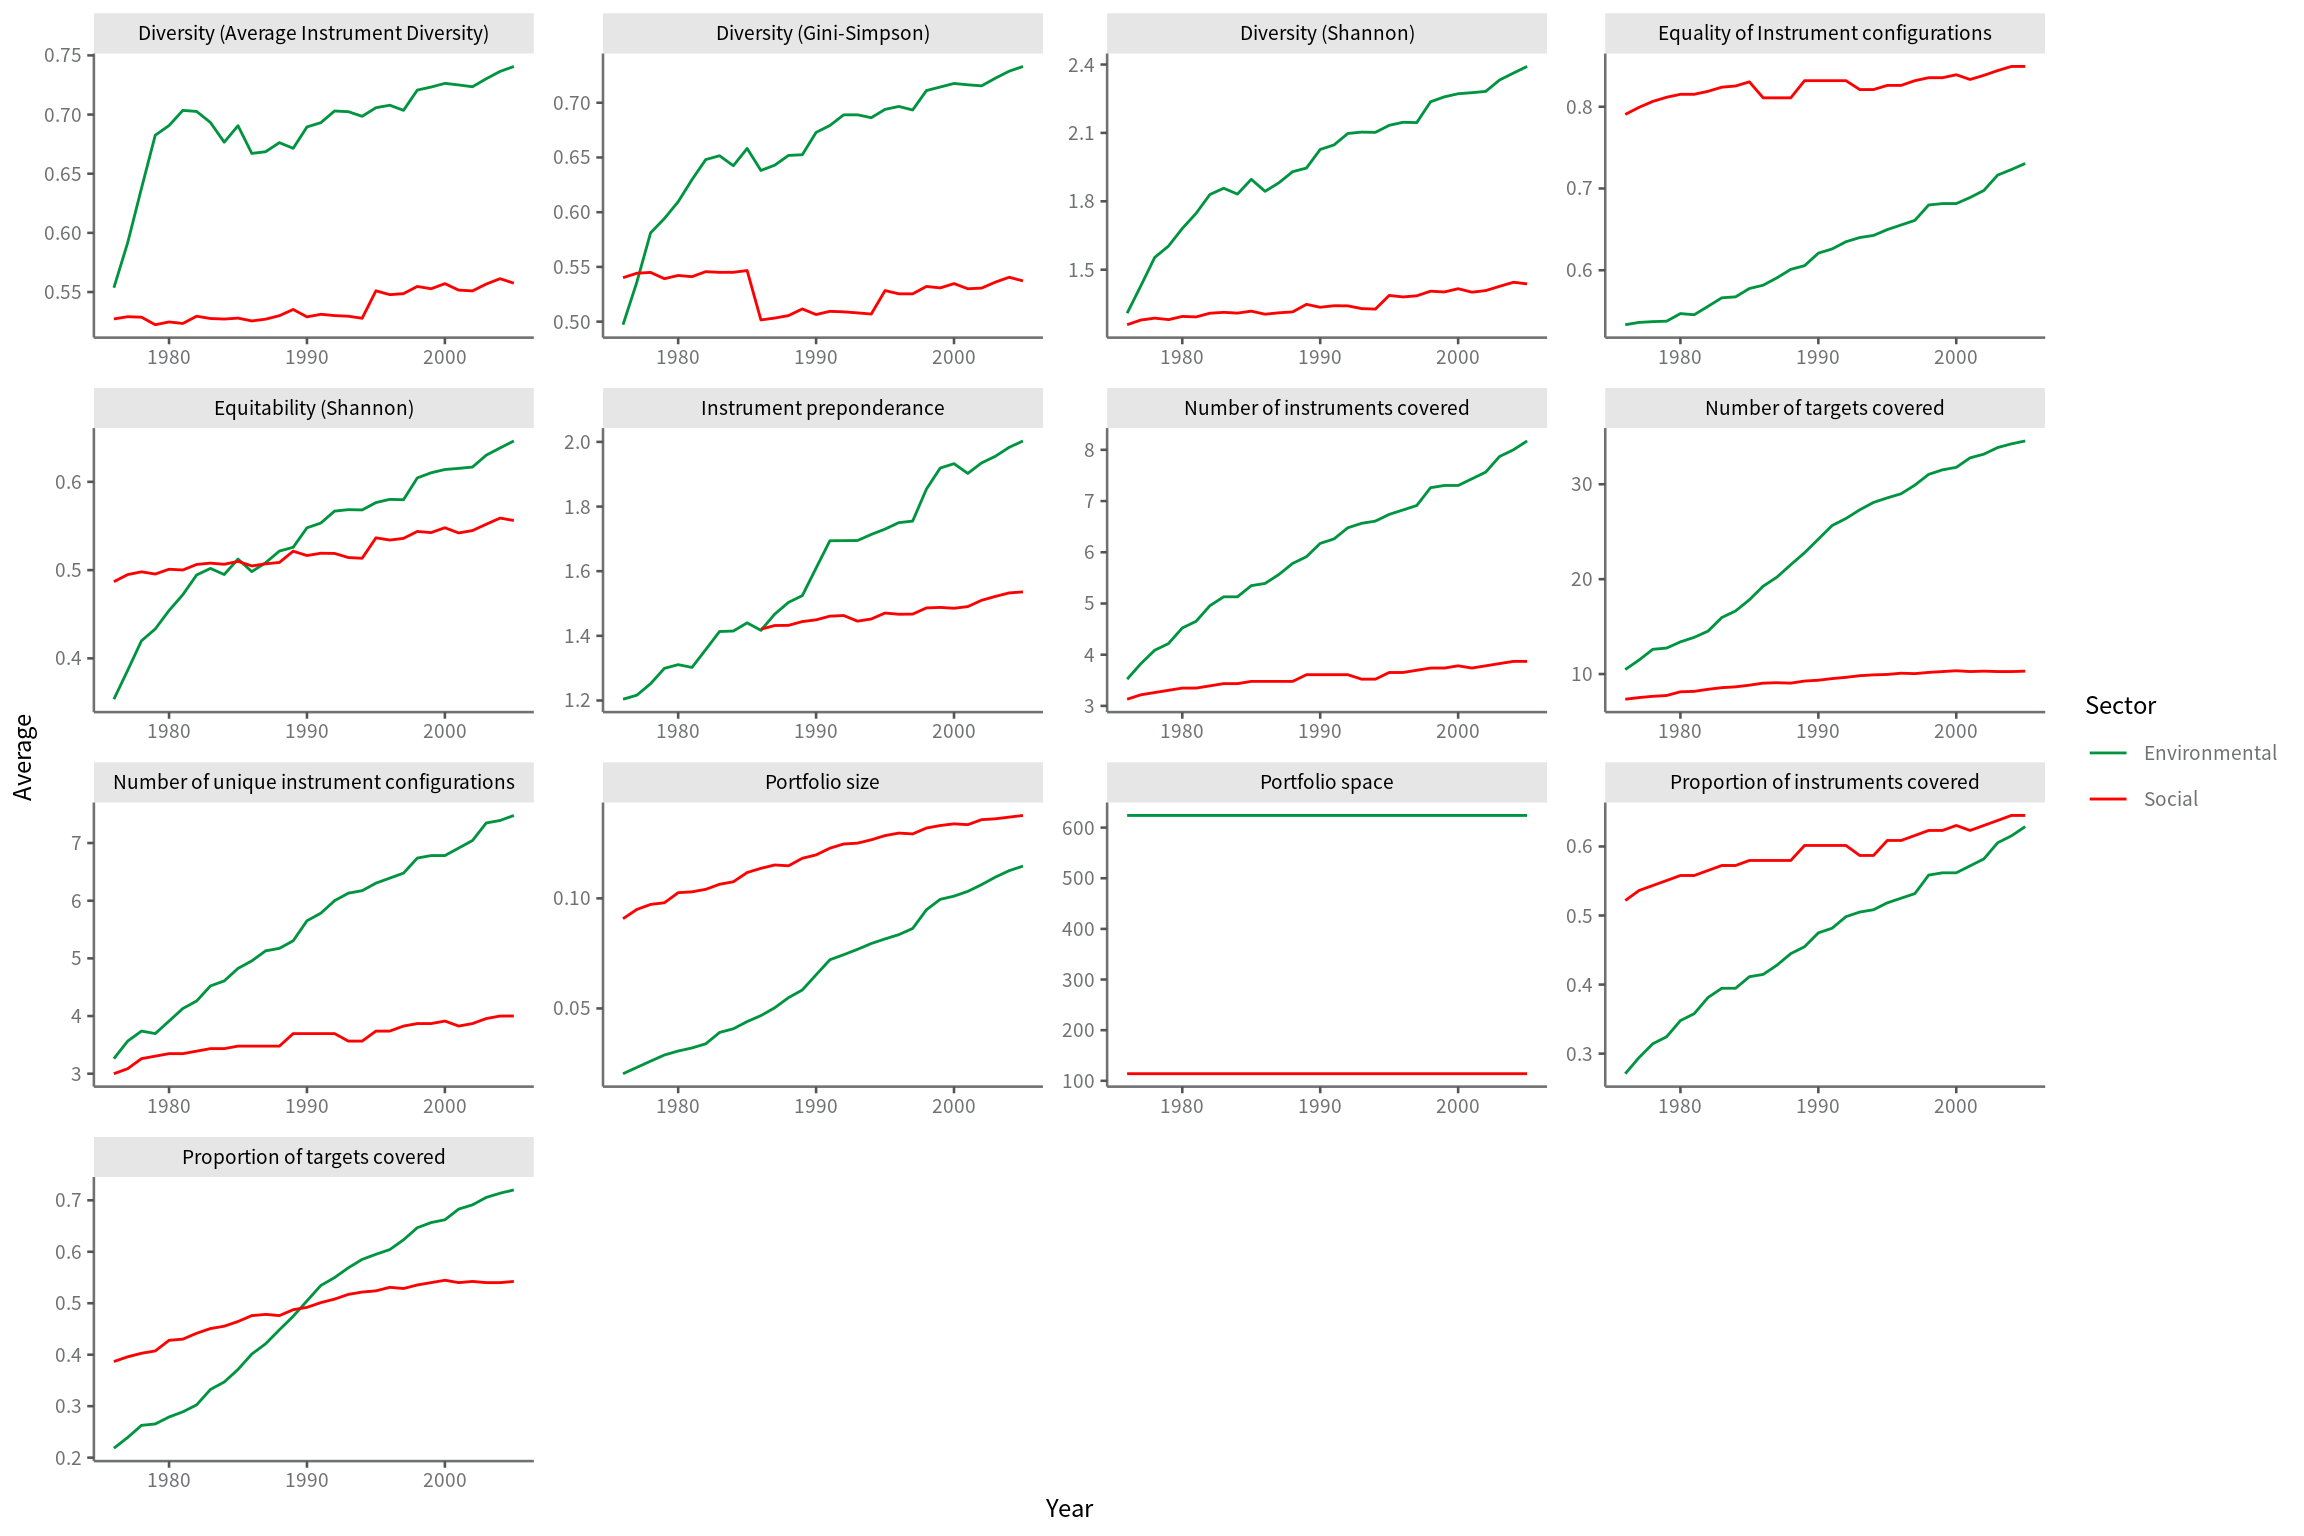 Temporal evolution of average measures of portfolio characteristics for the countries considered in the CONSENSUS dataset.